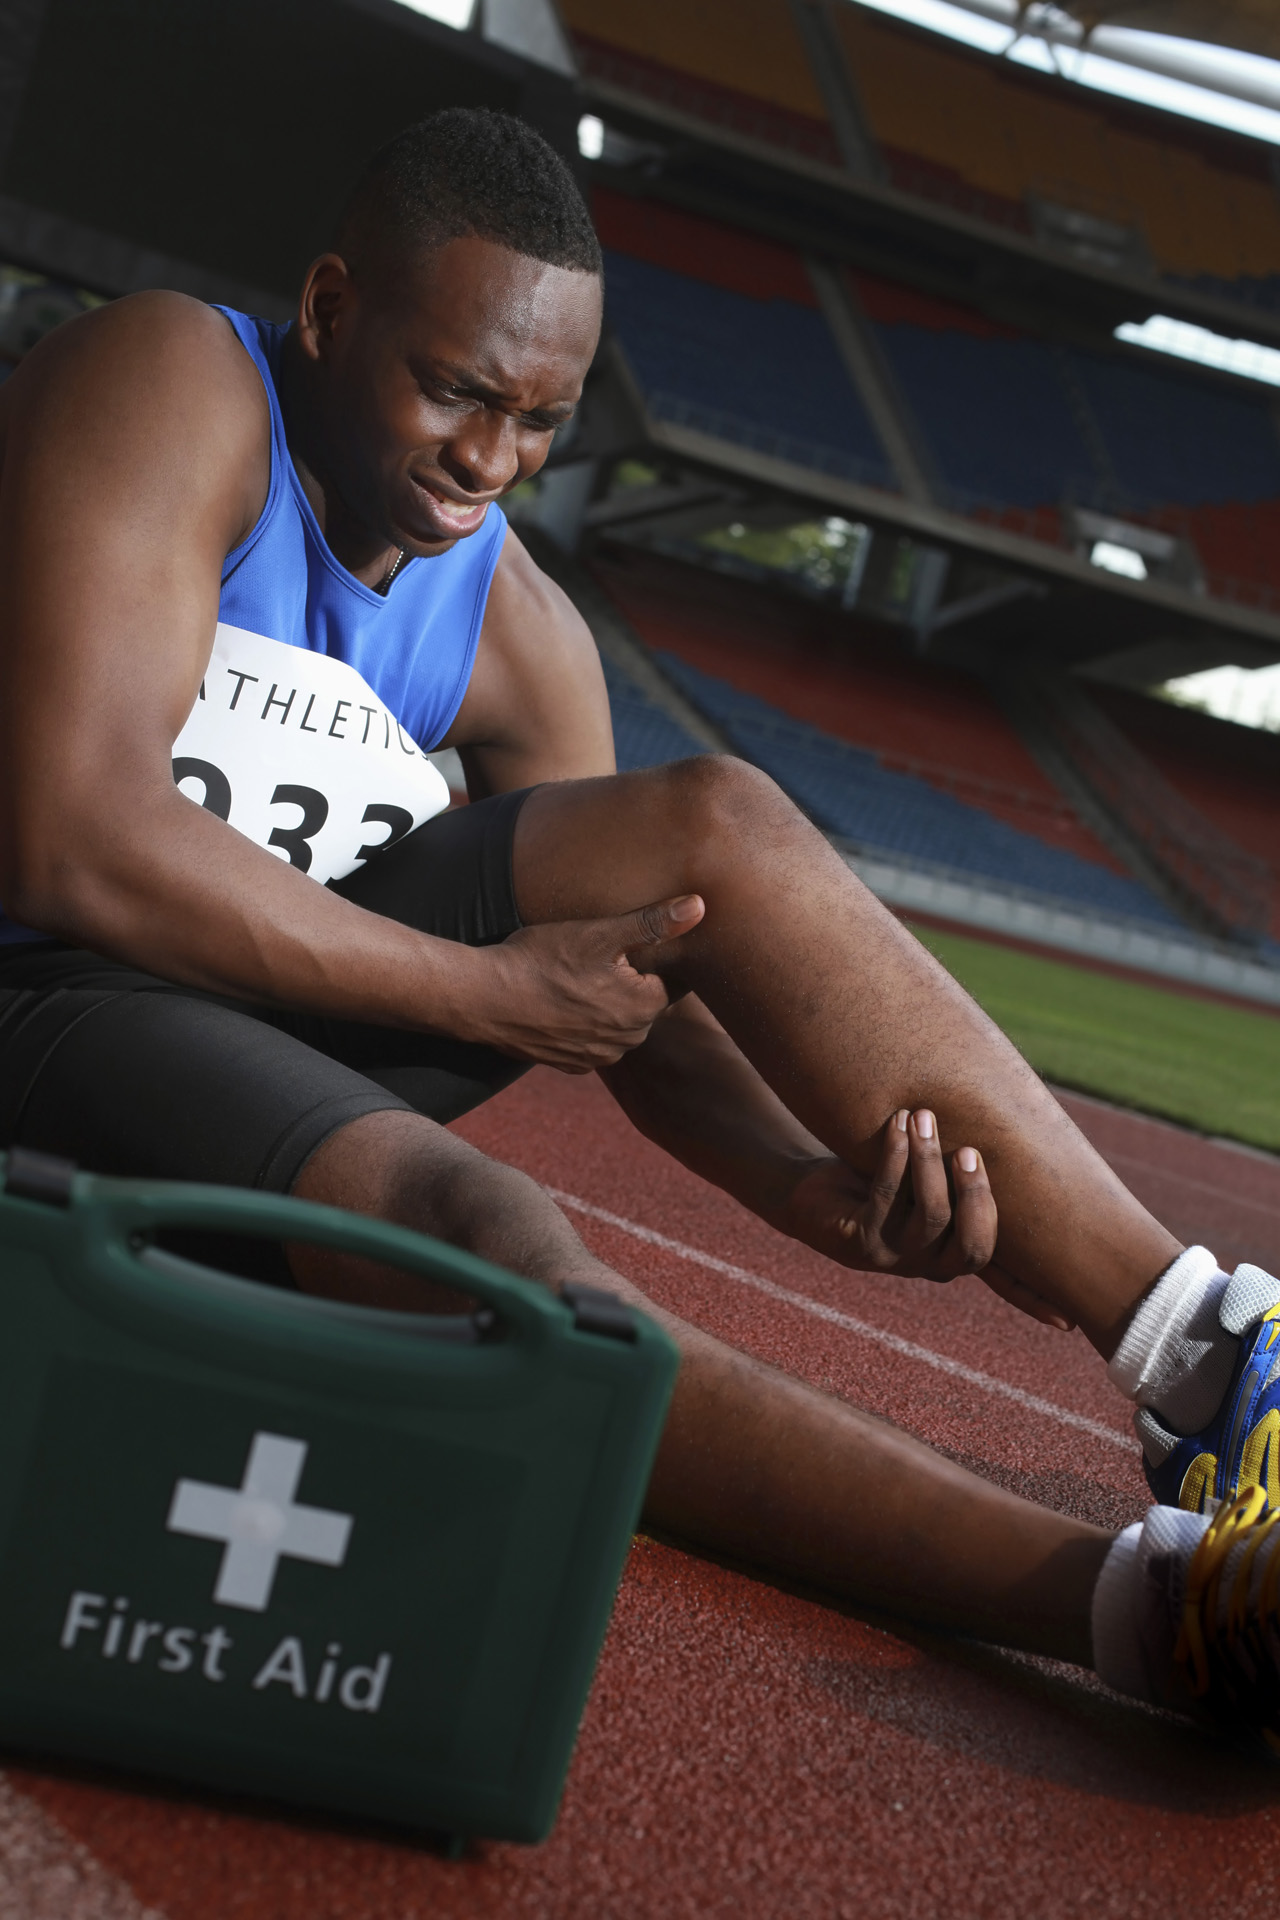 Male-athlete-lying-on-track-clasping-leg-in-pain